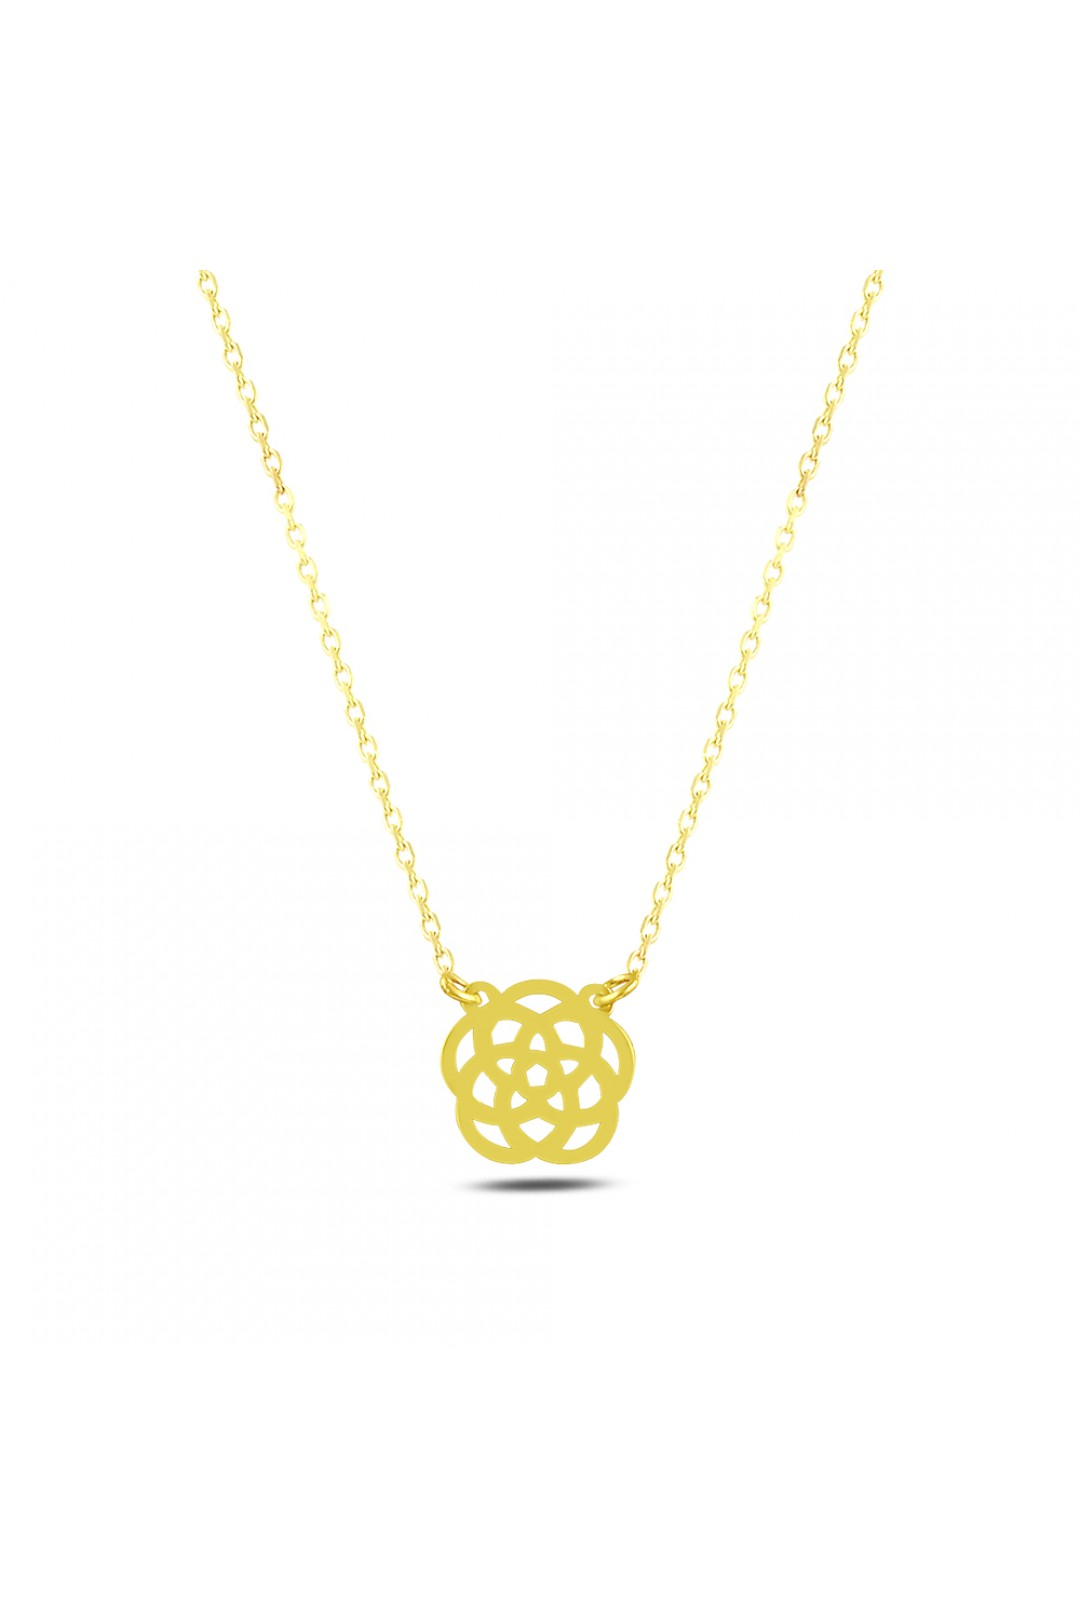 LIVING SEED SYMBOL NECKLACE